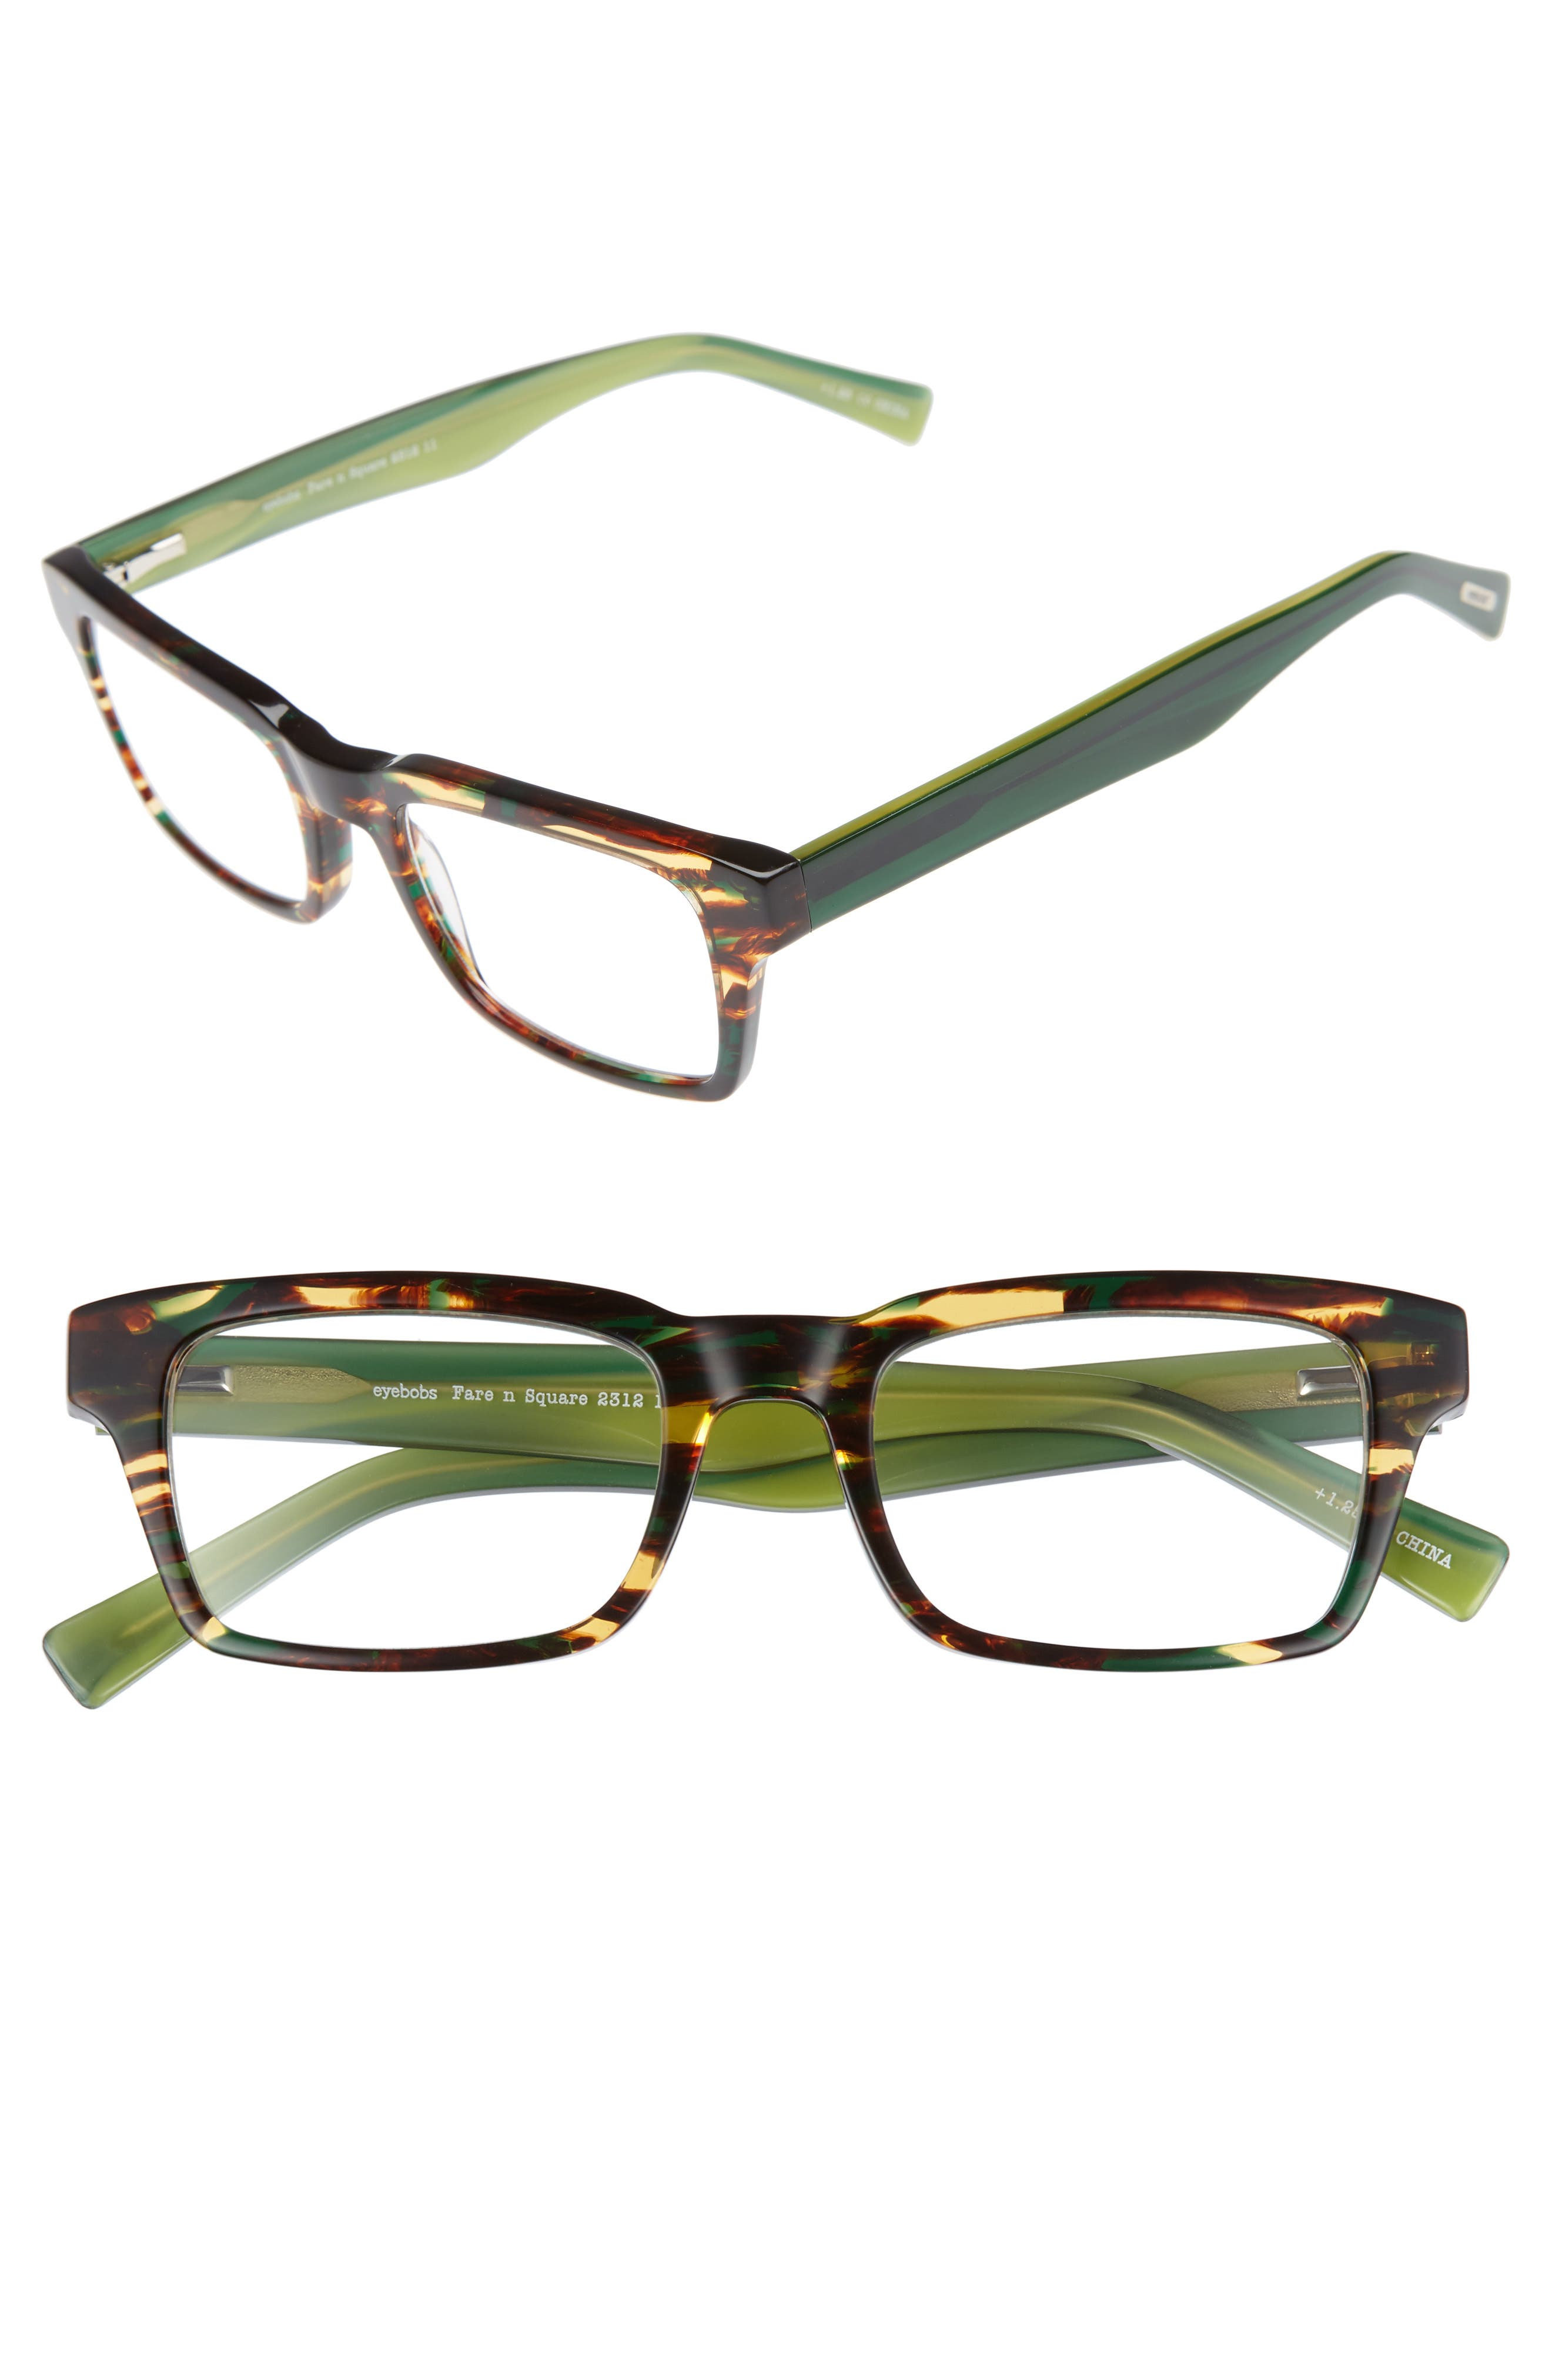 Alternate Image 1 Selected - Eyebobs Fare N Square 51mm Reading Glasses